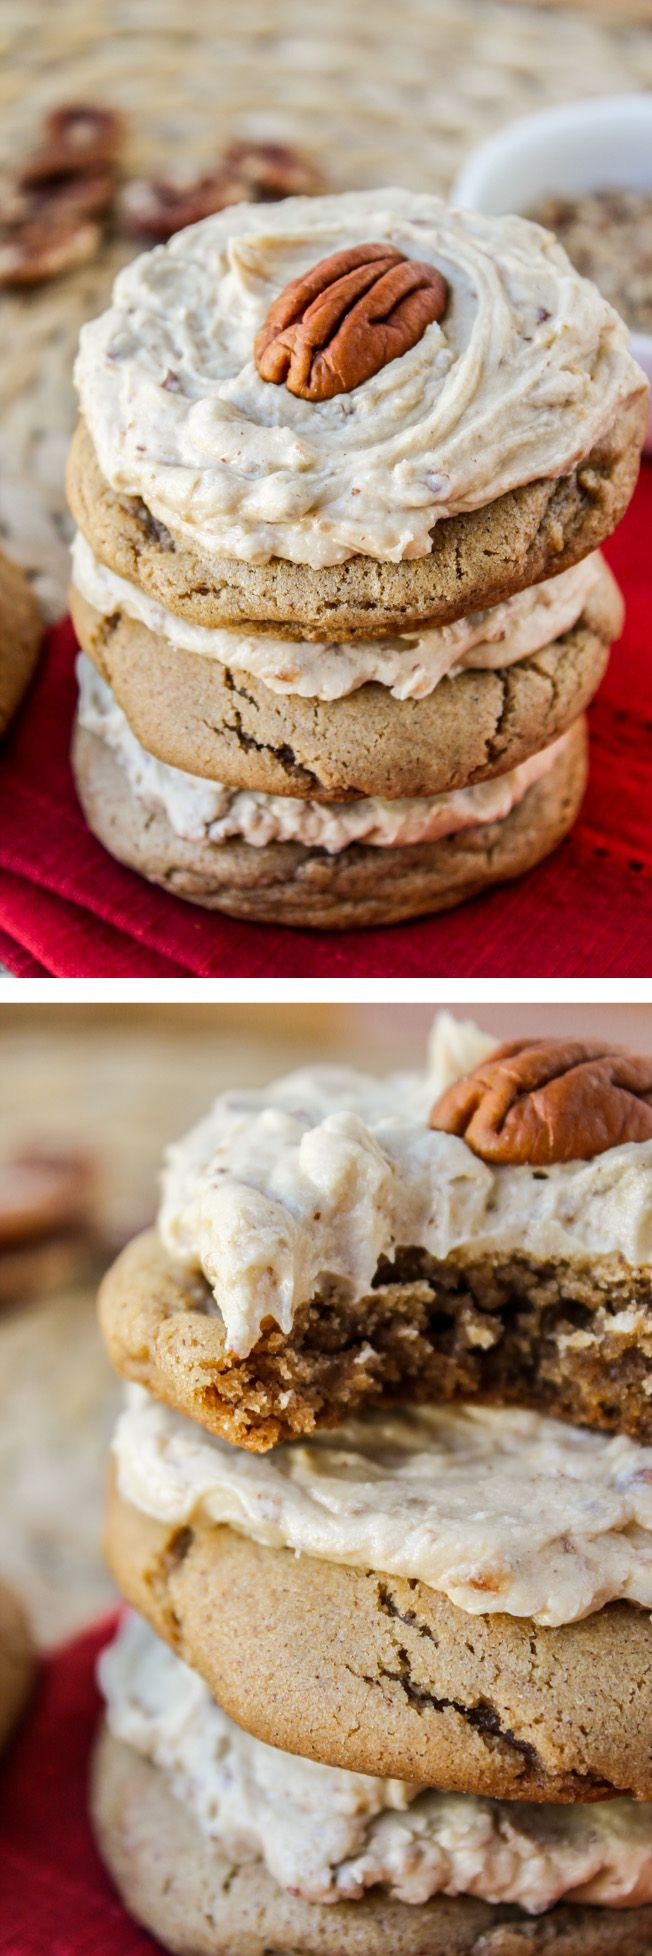 Soft Cinnamon Cookies with Maple Pecan Frosting - Super soft, cinnamon-y cookies topped with the best frosting ever! Maple-cinnamon-pecan were meant to be.